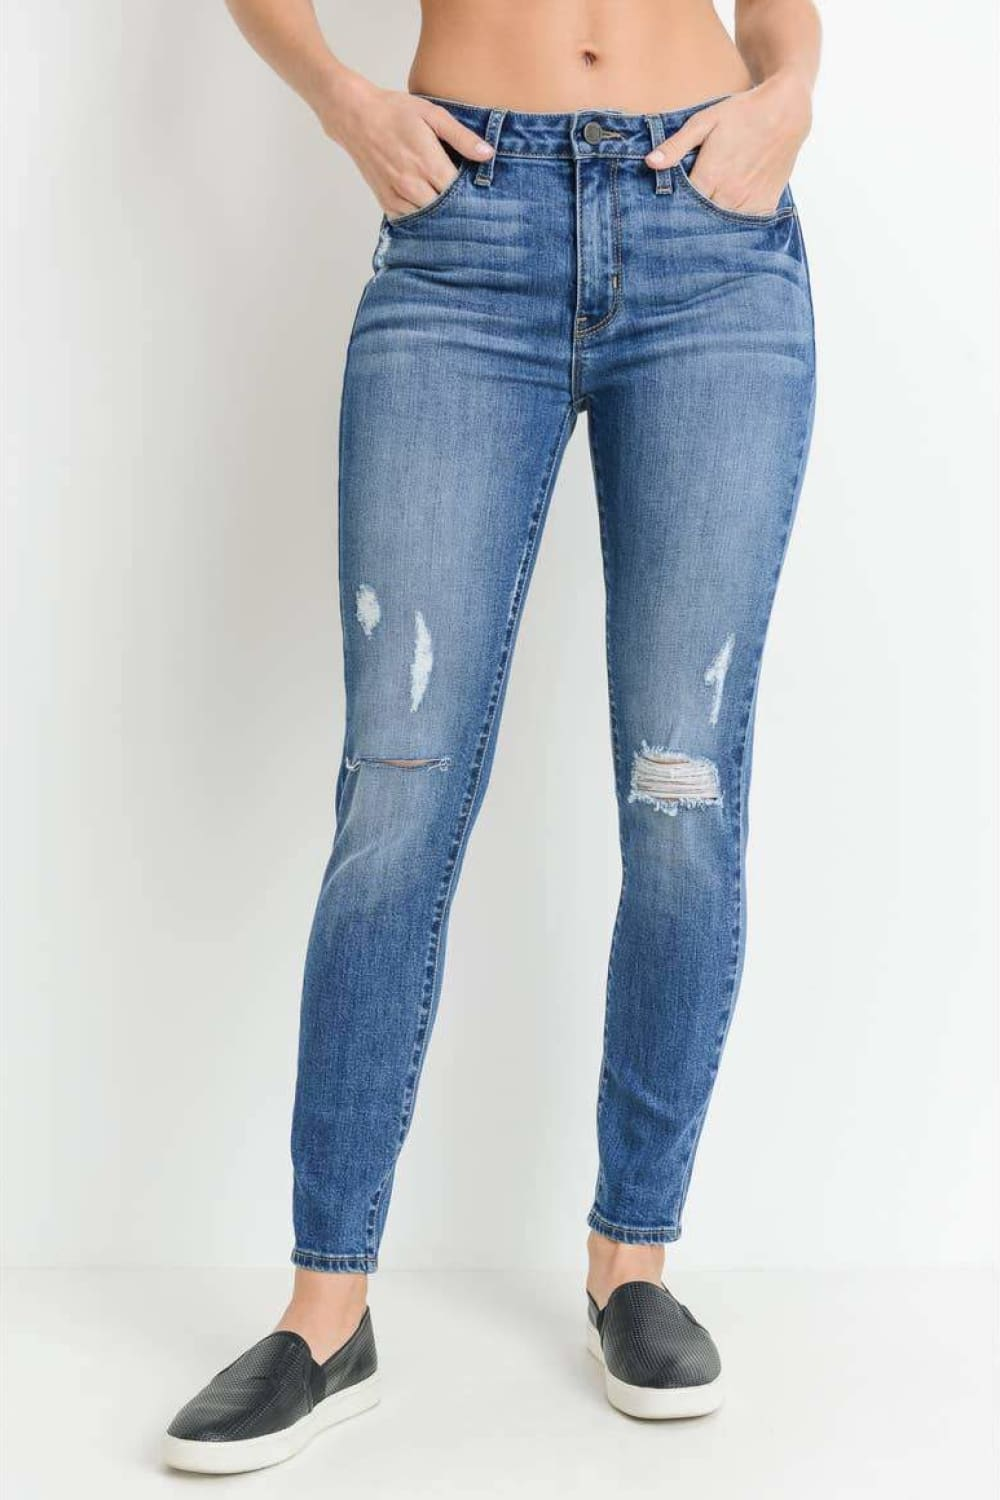 JUST BLACK DENIM Distressed Skinny Jeans - Jeans - JUST BLACK DENIM